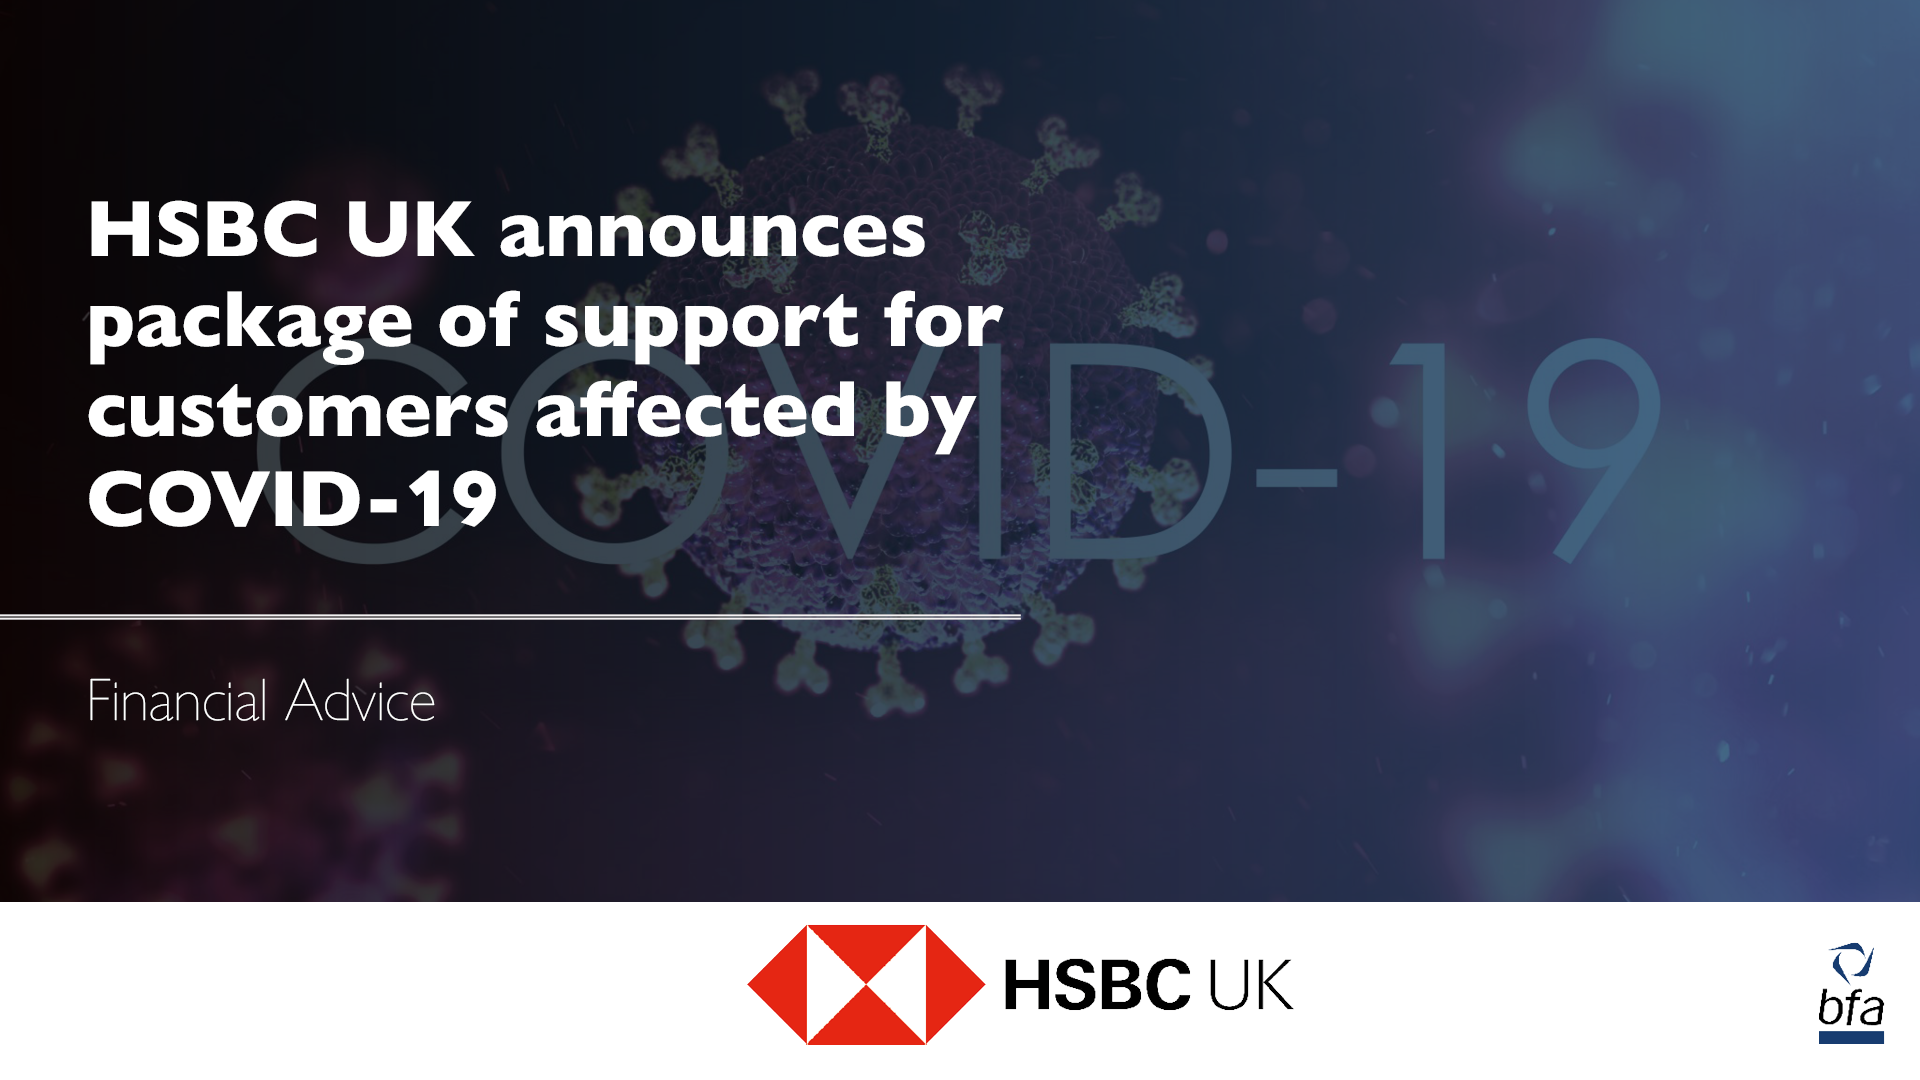 HSBC UK announces package of support for customers affected by COVID-19